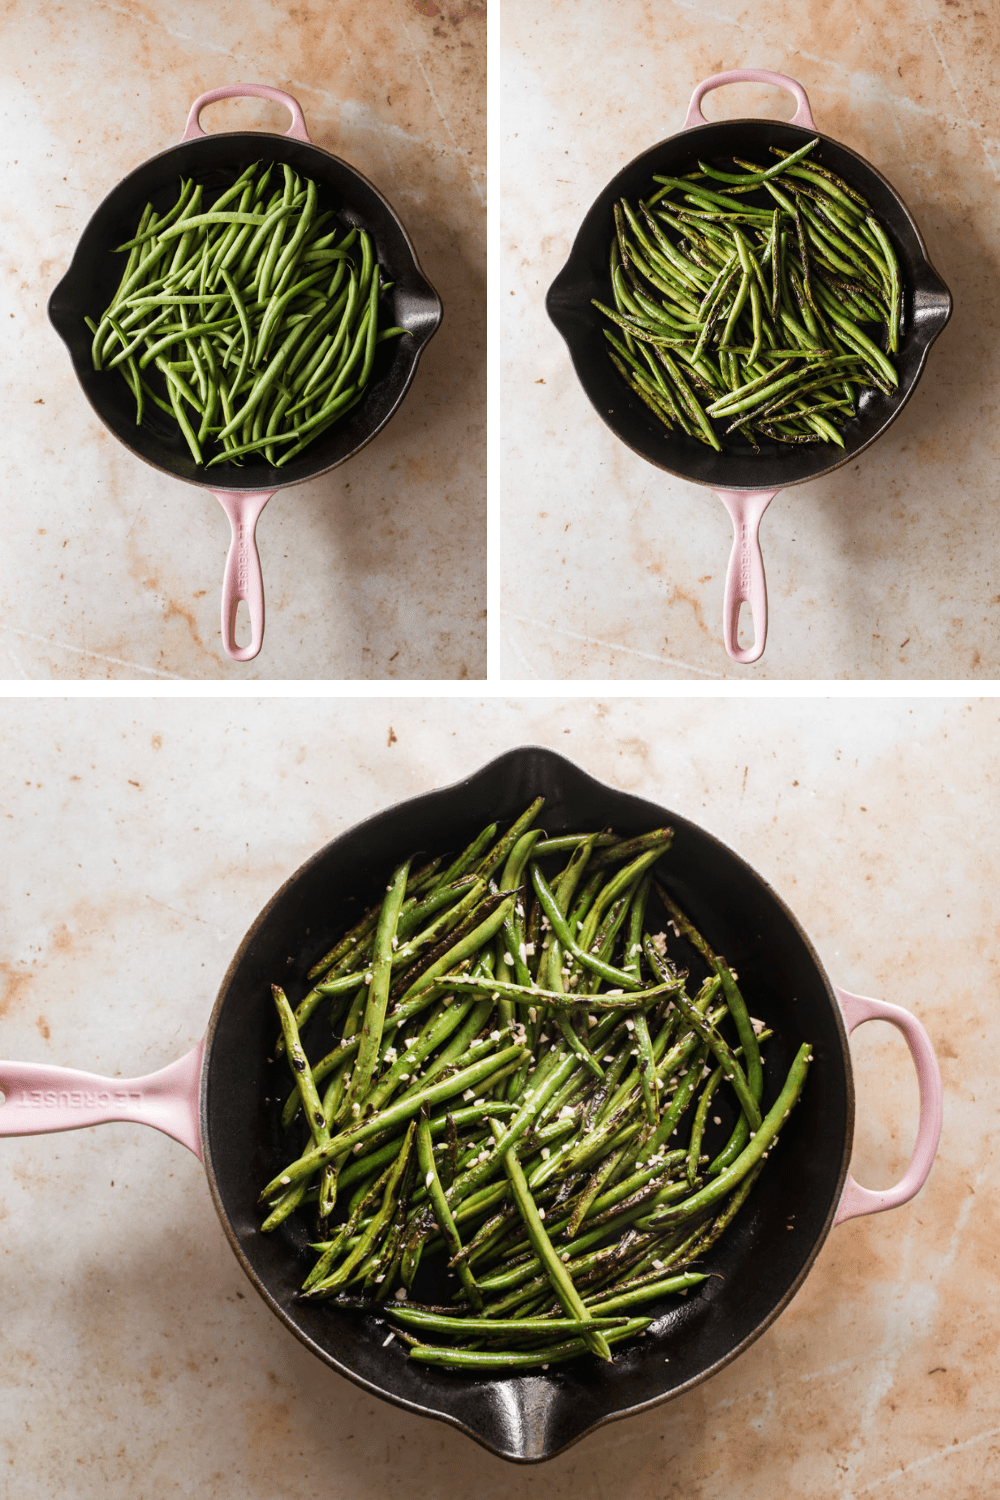 3 images of green beans cooking in a pink skillet